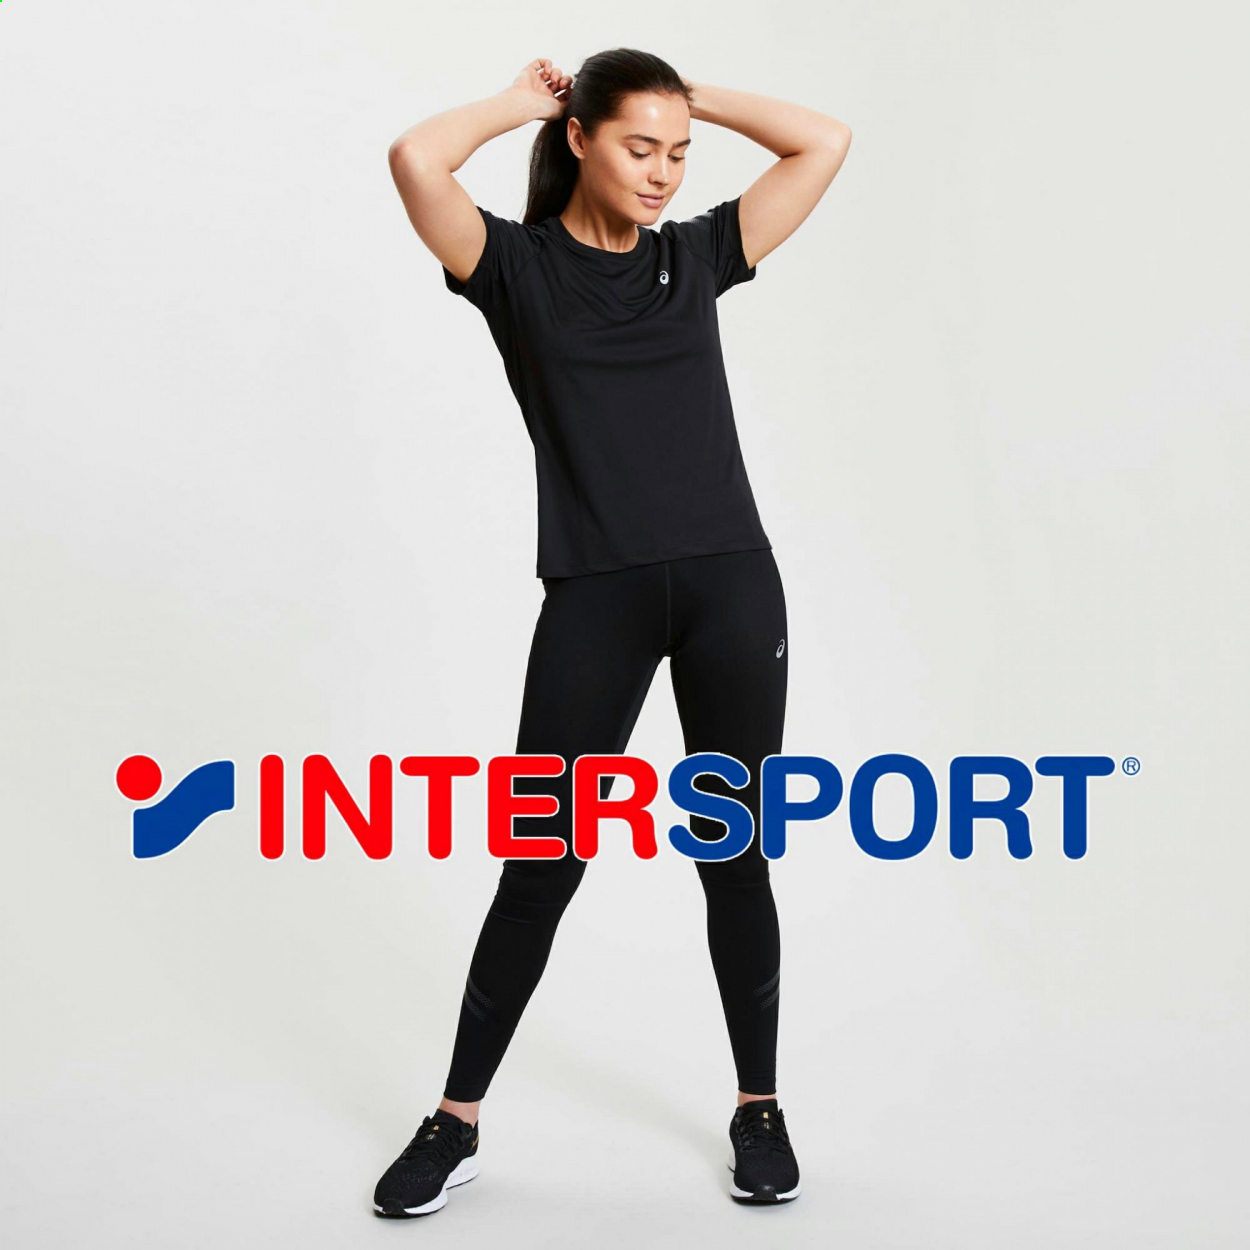 Kundeavis Intersport. Side 1.